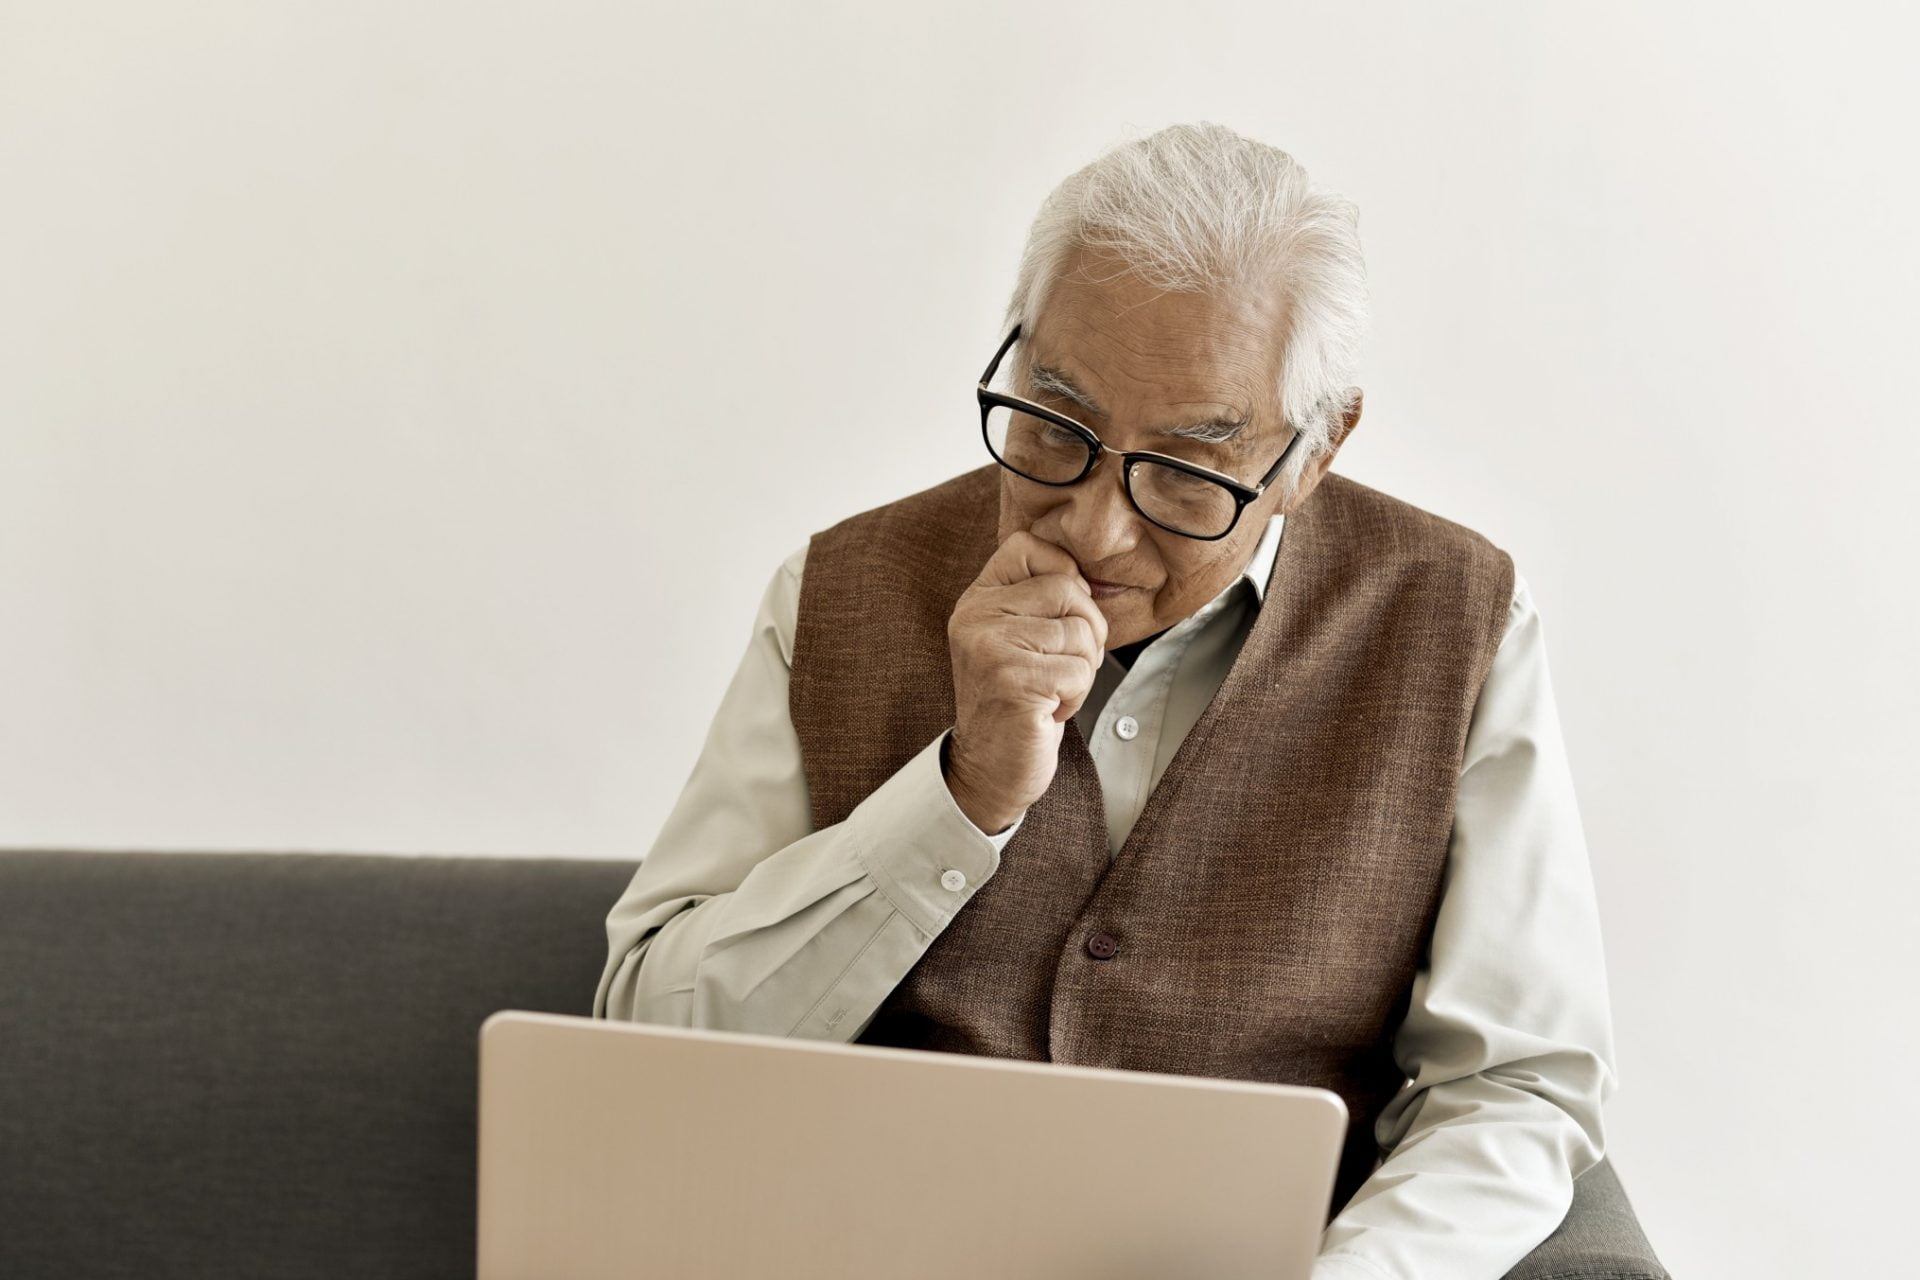 Elderly man with glasses viewing a laptop